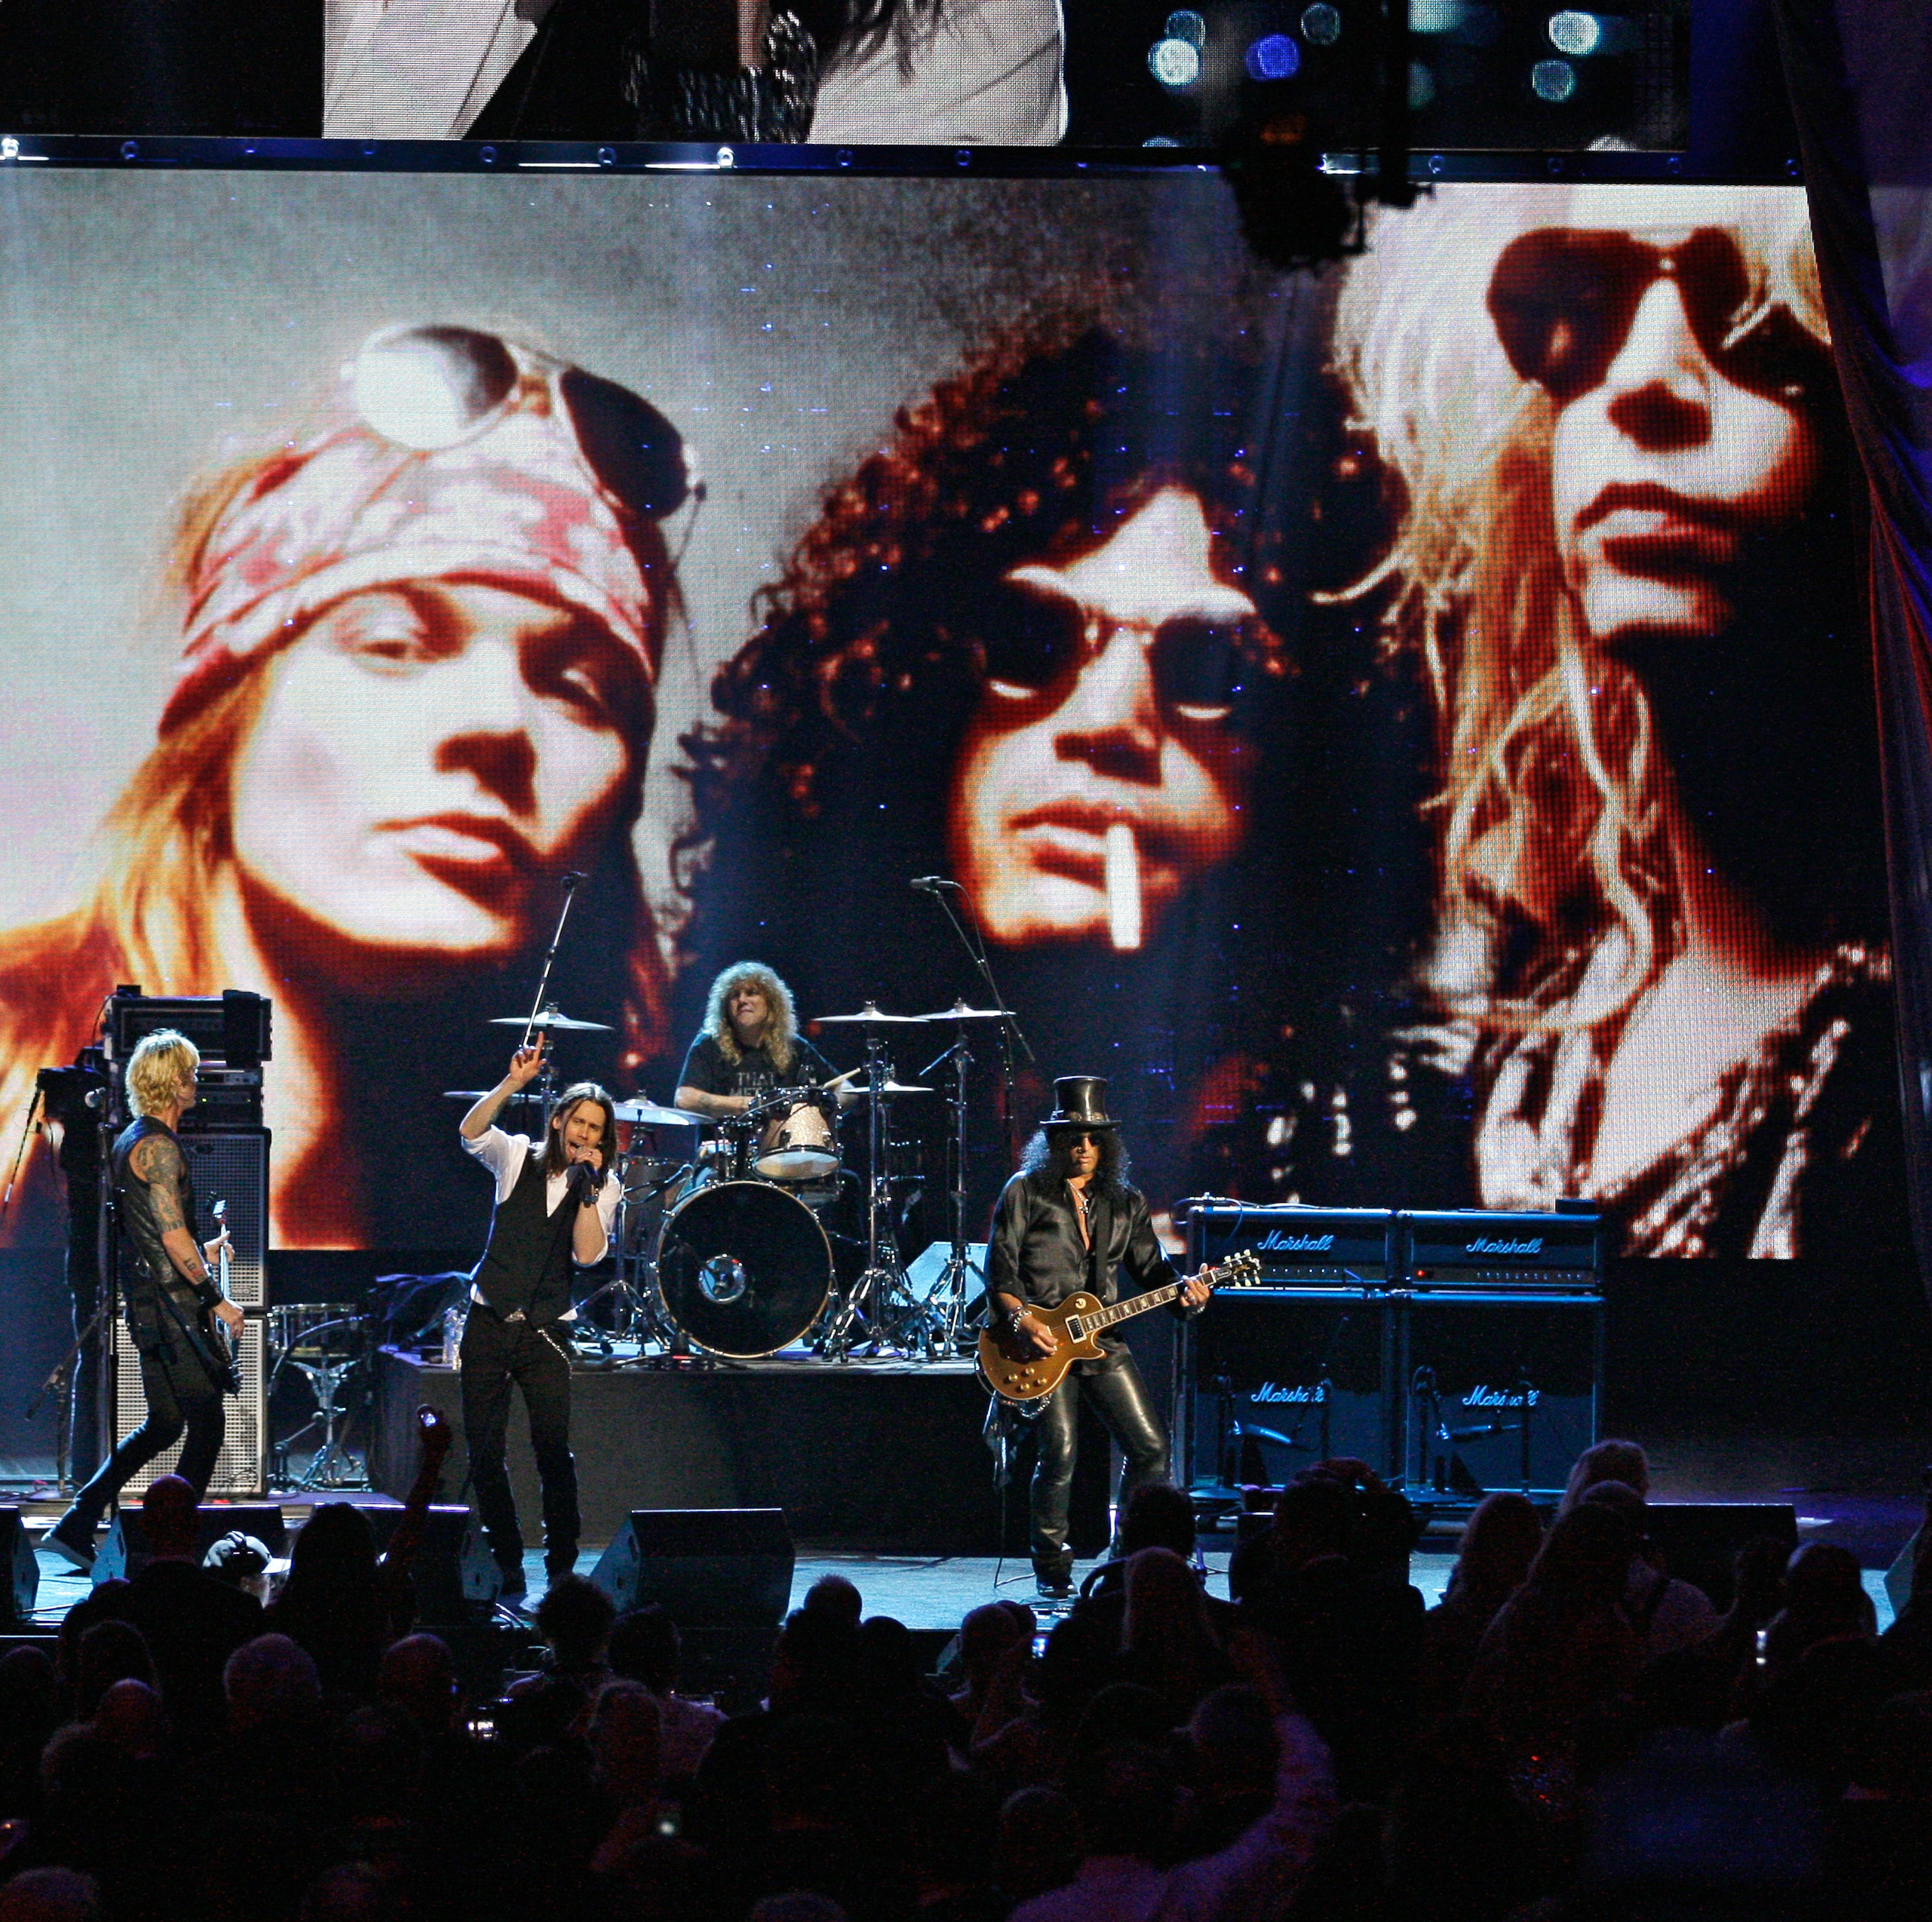 Guns N' Roses sues Oskar Blues Brewery over its 'Guns 'N' Rosé' beer